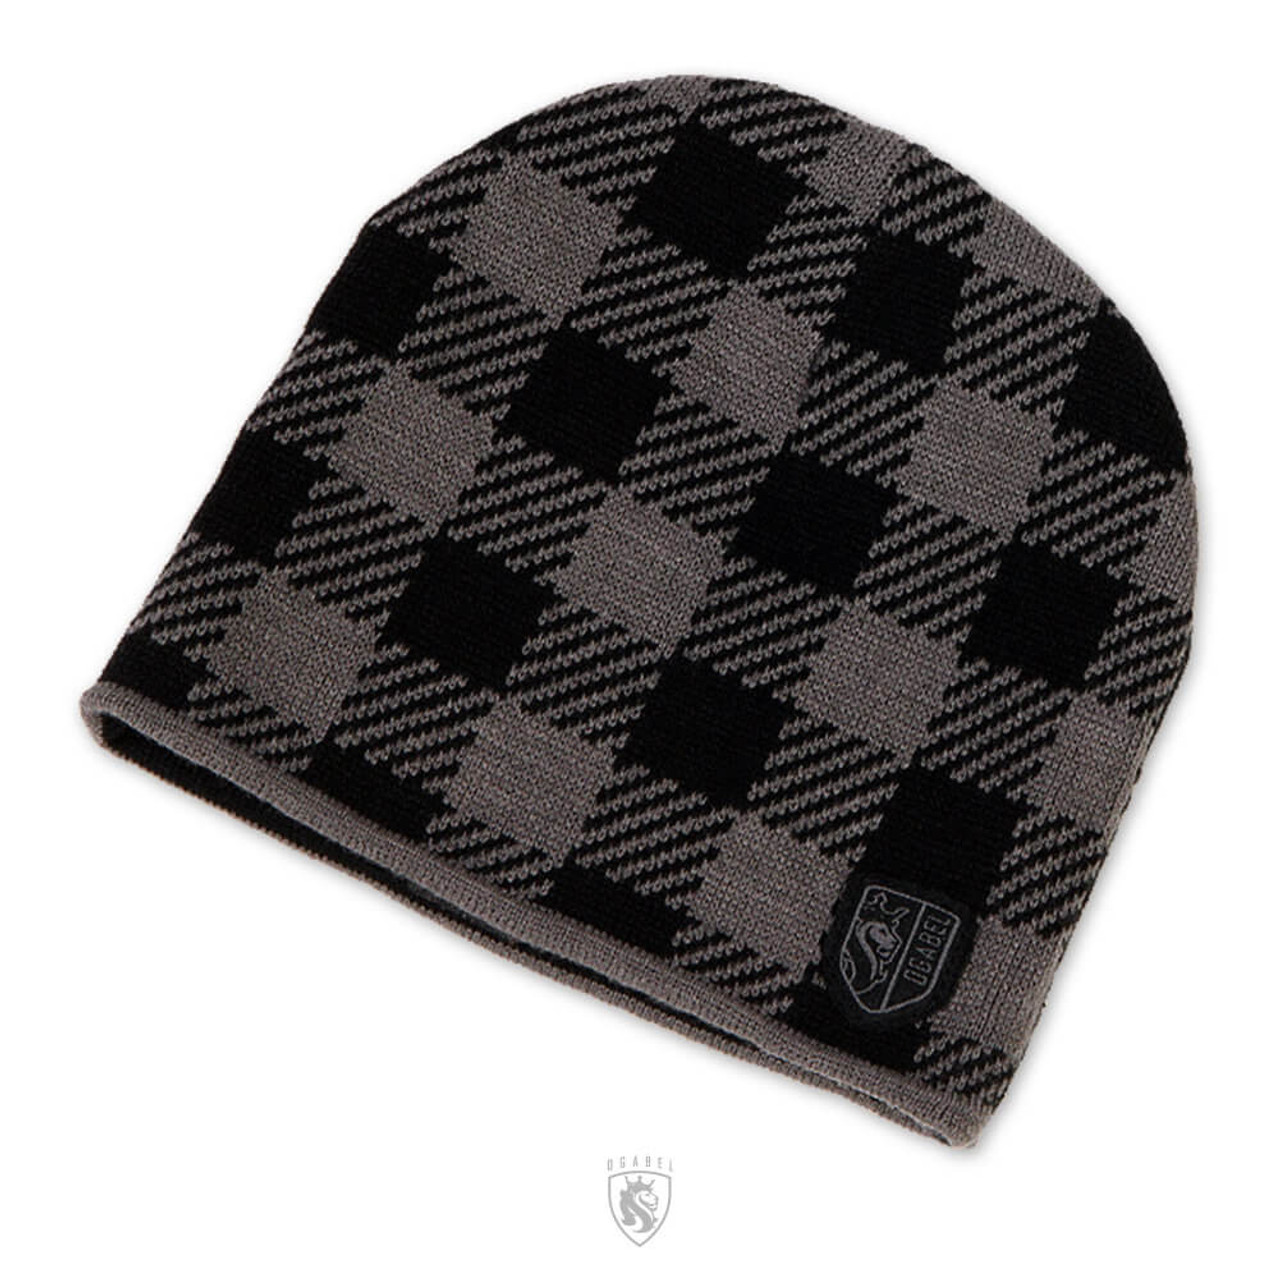 SKU  BN014  Availability  Usually ships within 24 hours  Weight  0.25 LBS   Shipping  Calculated at Checkout. Plaid Beanie 31f8dd8136b